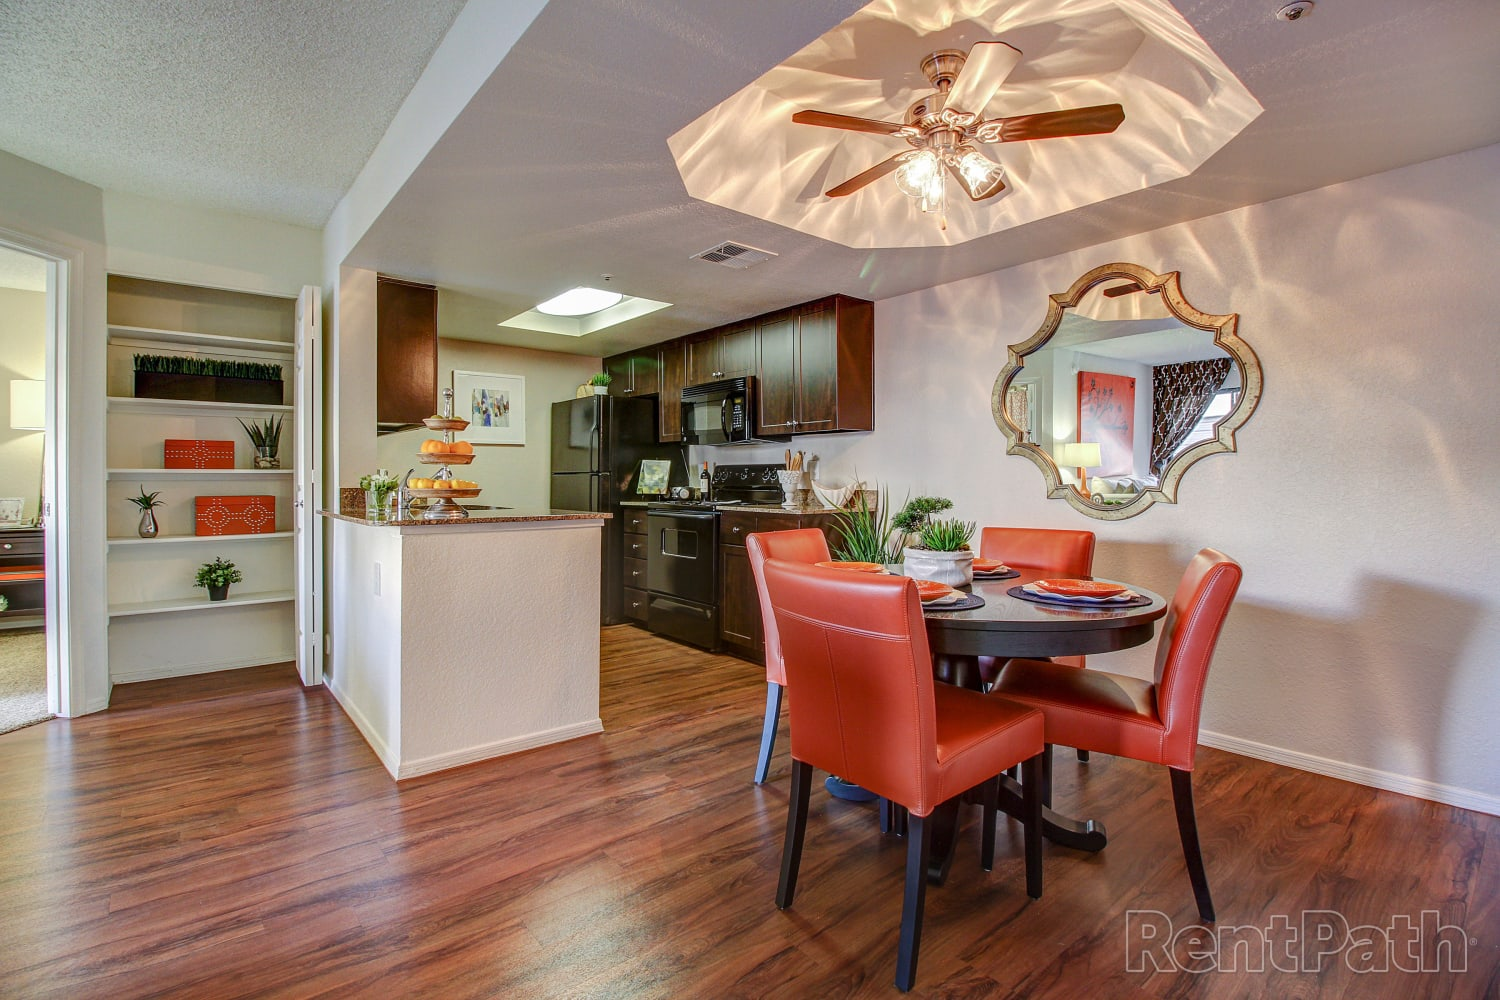 Dinning room with hardwood floors and a ceiling fan at Casa Santa Fe Apartments in Scottsdale, Arizona